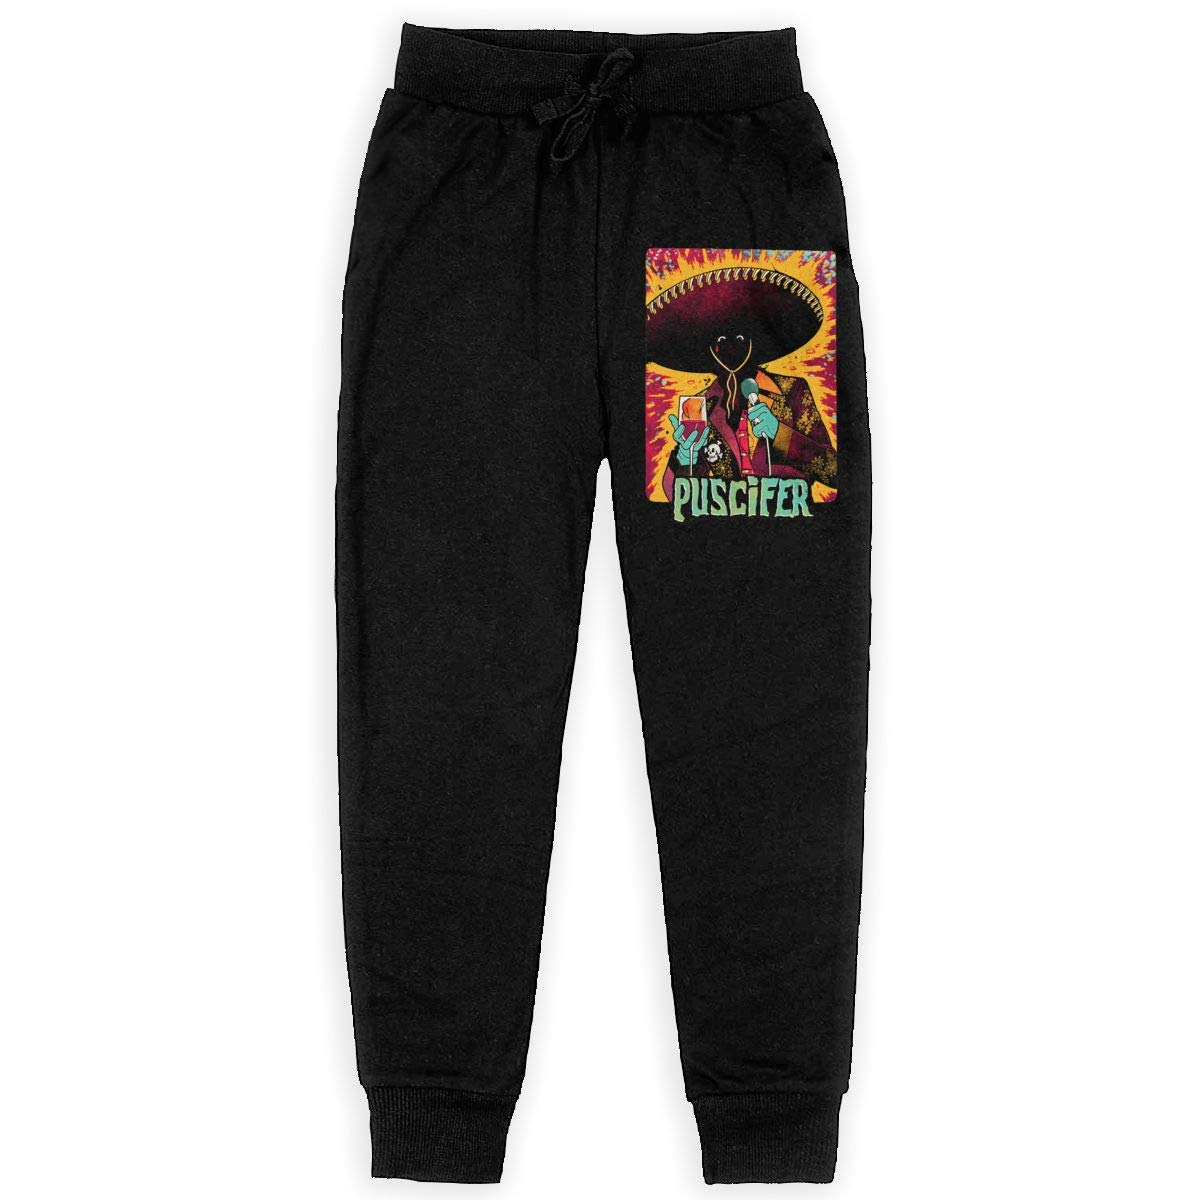 Unisex Young Puscifer Elastic Music Band Fans Daily Sweatpants for Boys Gift with Pockets